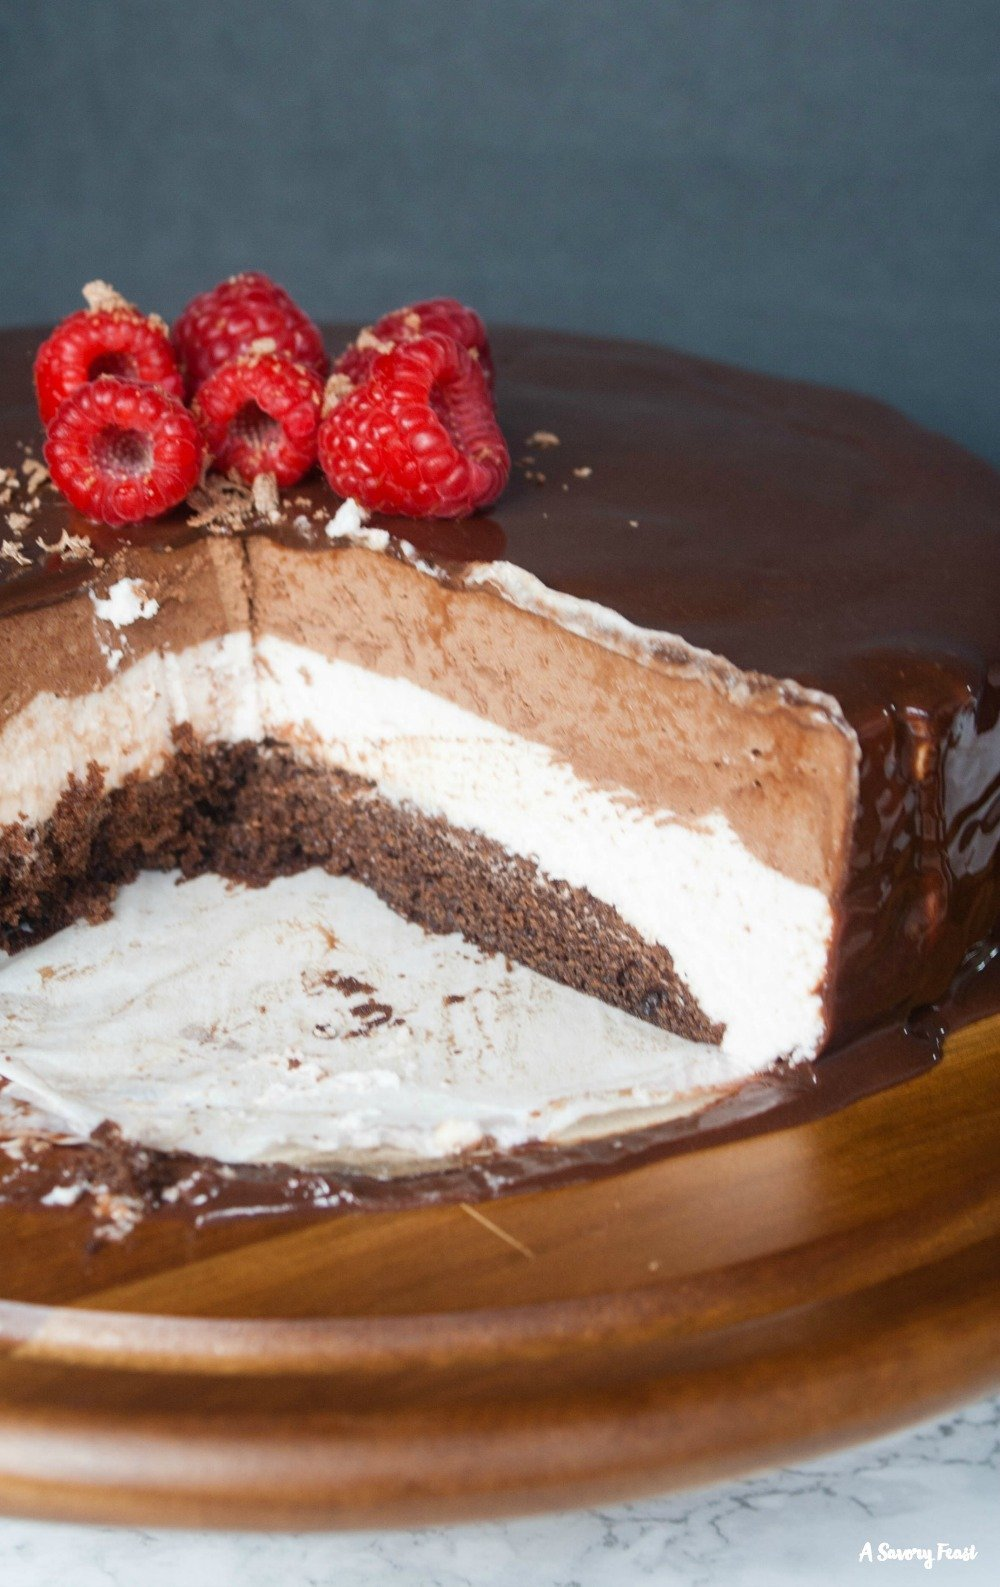 Impress your guests with this Raspberry Chocolate Mousse Cake with Mirror Glaze